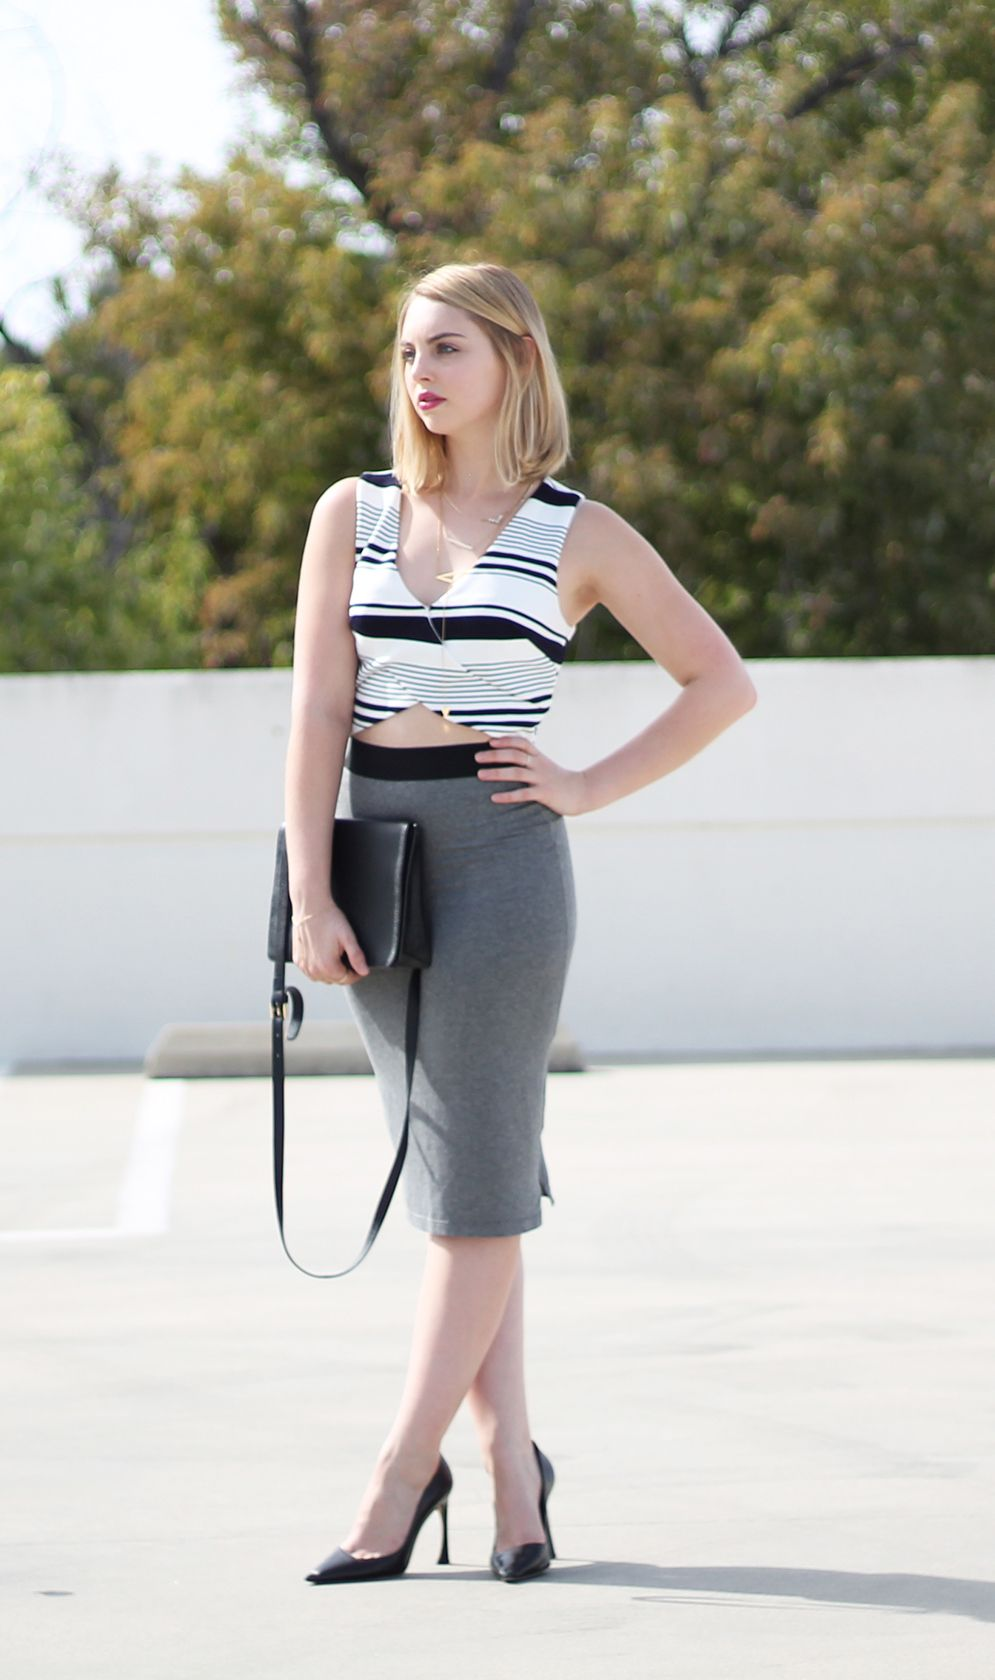 To acquire 3 wear to ways the crop top picture trends